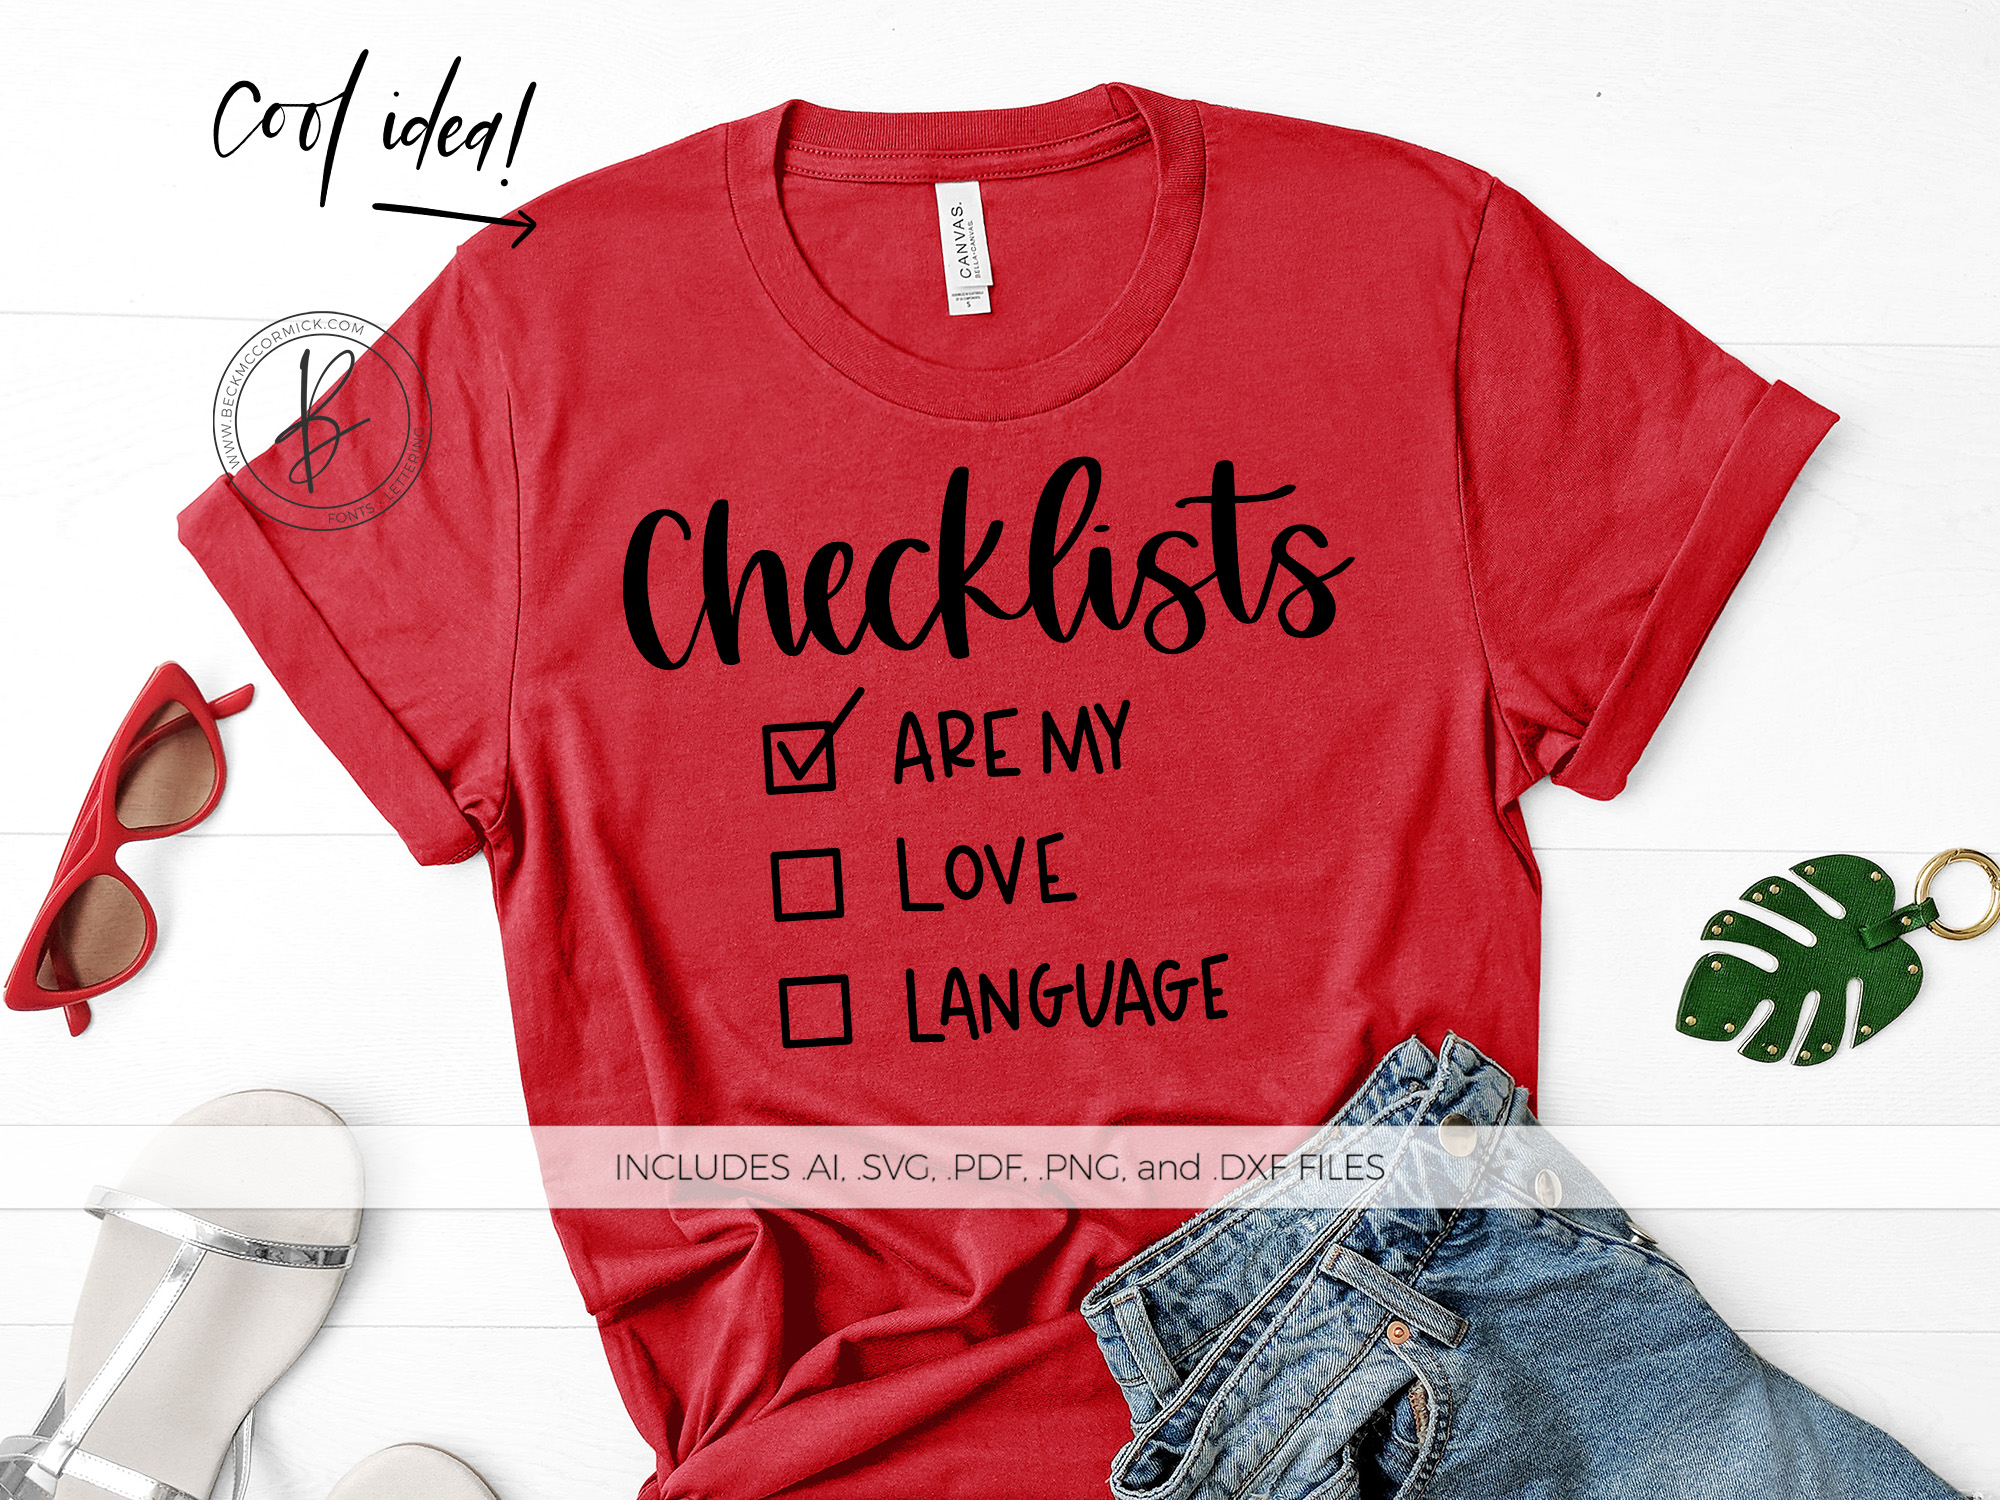 Download Free Checklists Are My Love Language Graphic By Beckmccormick for Cricut Explore, Silhouette and other cutting machines.